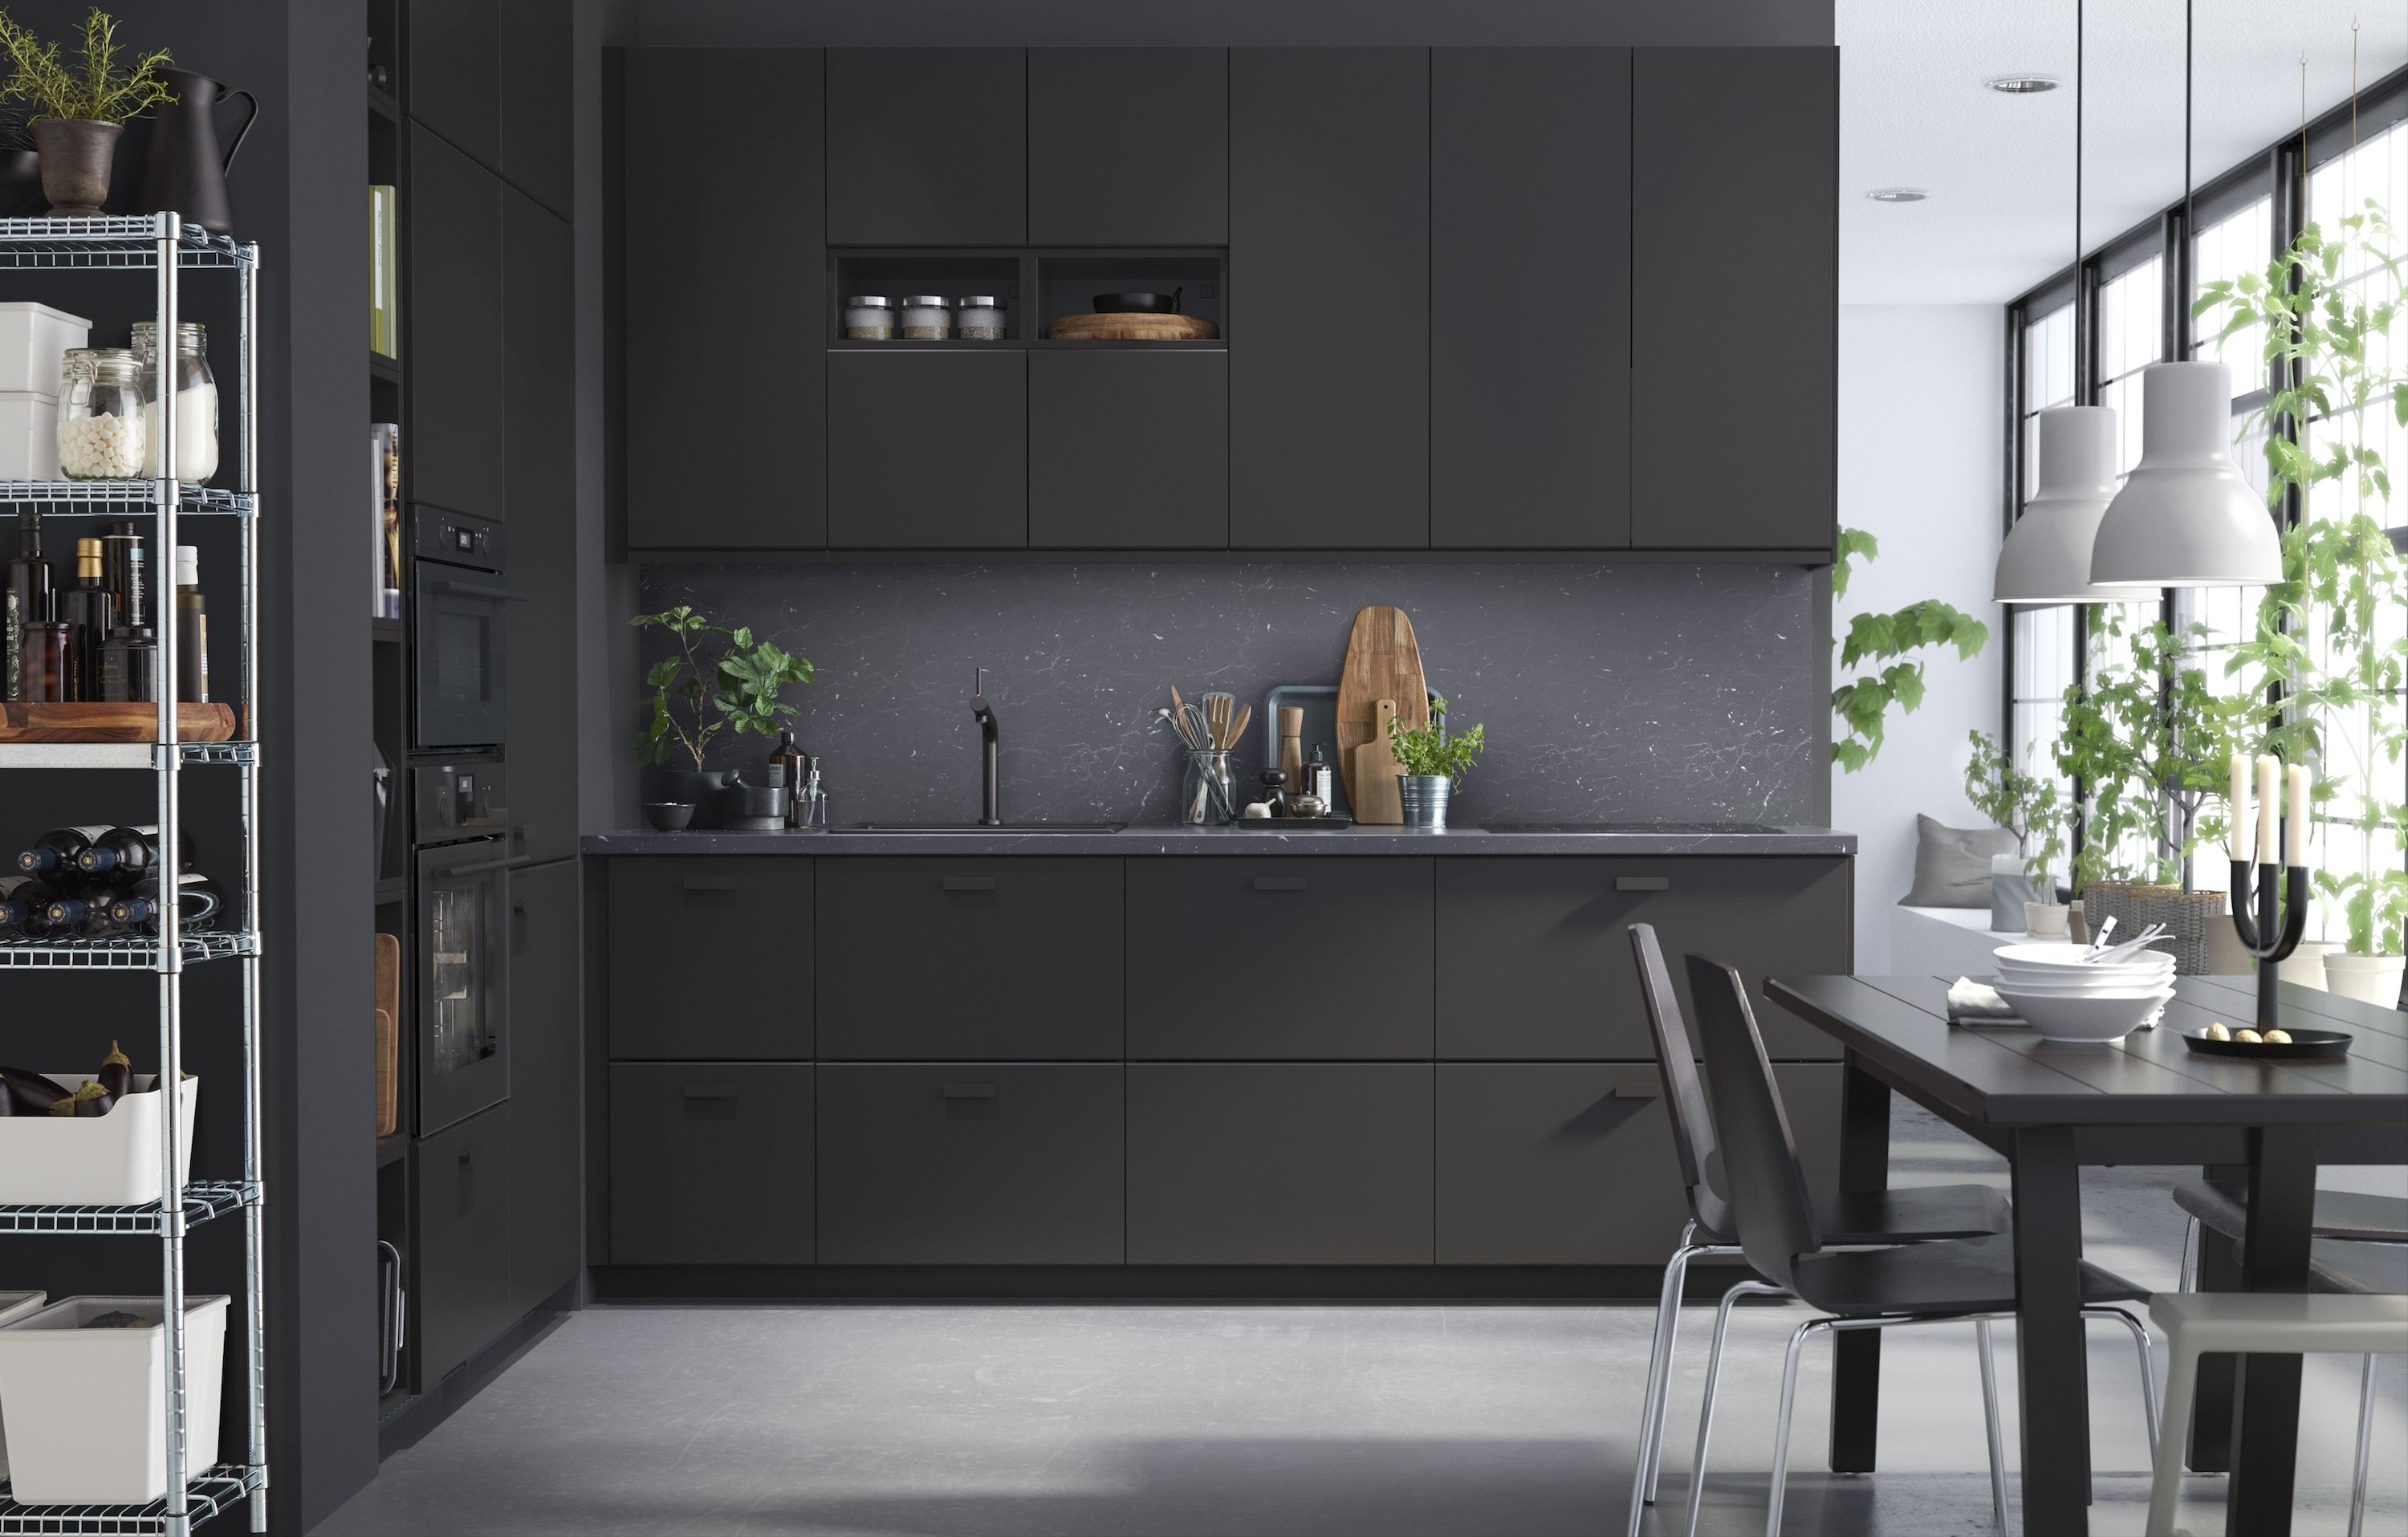 Ikea Kitchen Cabinet S Ikea Kitchen Cabinets Made From Recycled Materials Black Ikea